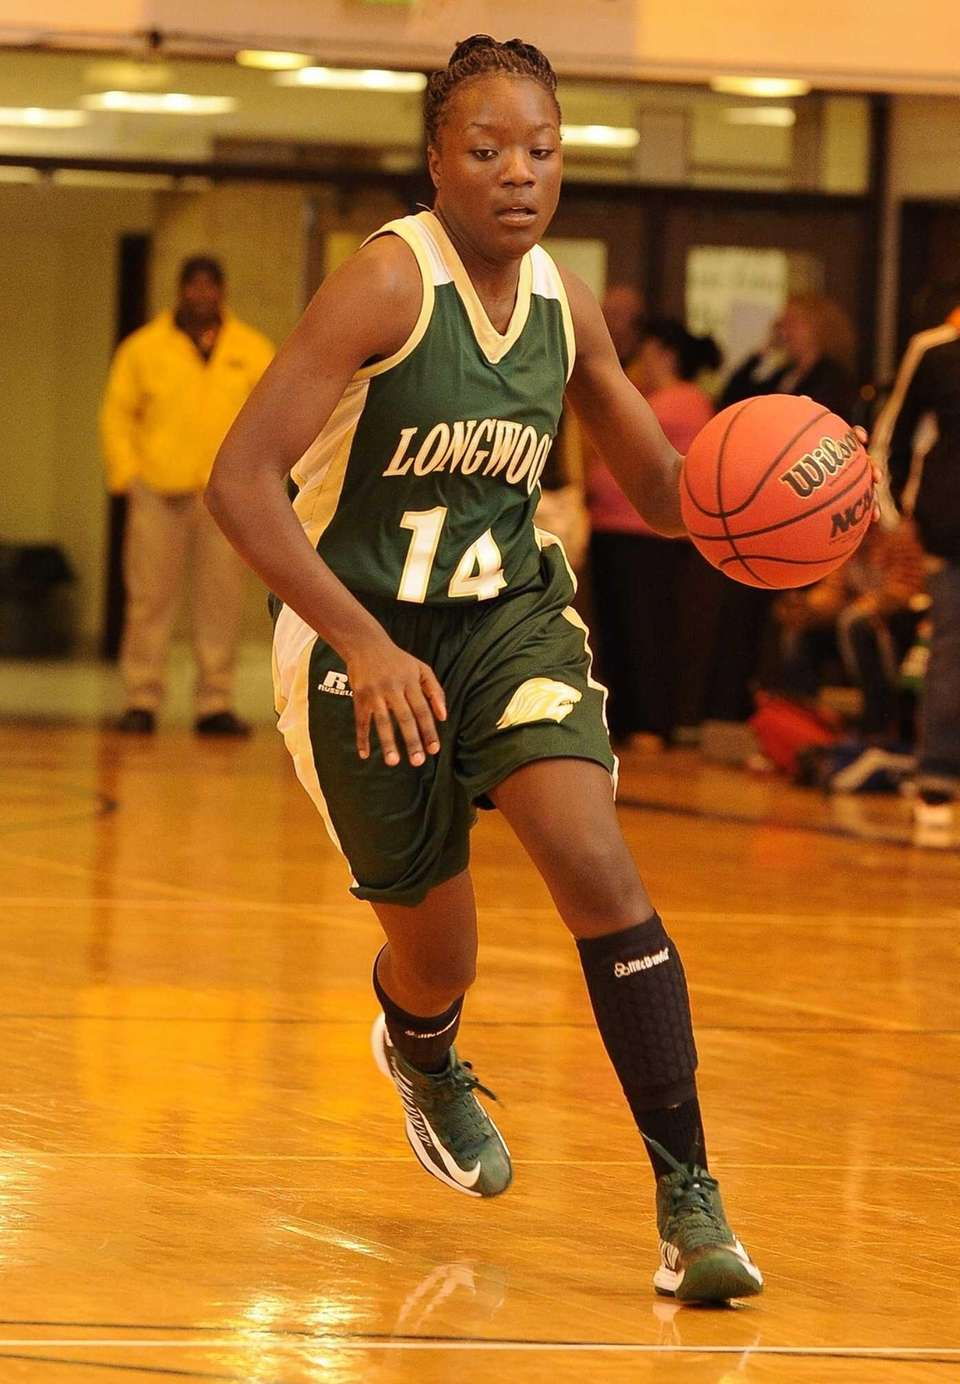 Longwood's Kiersten West